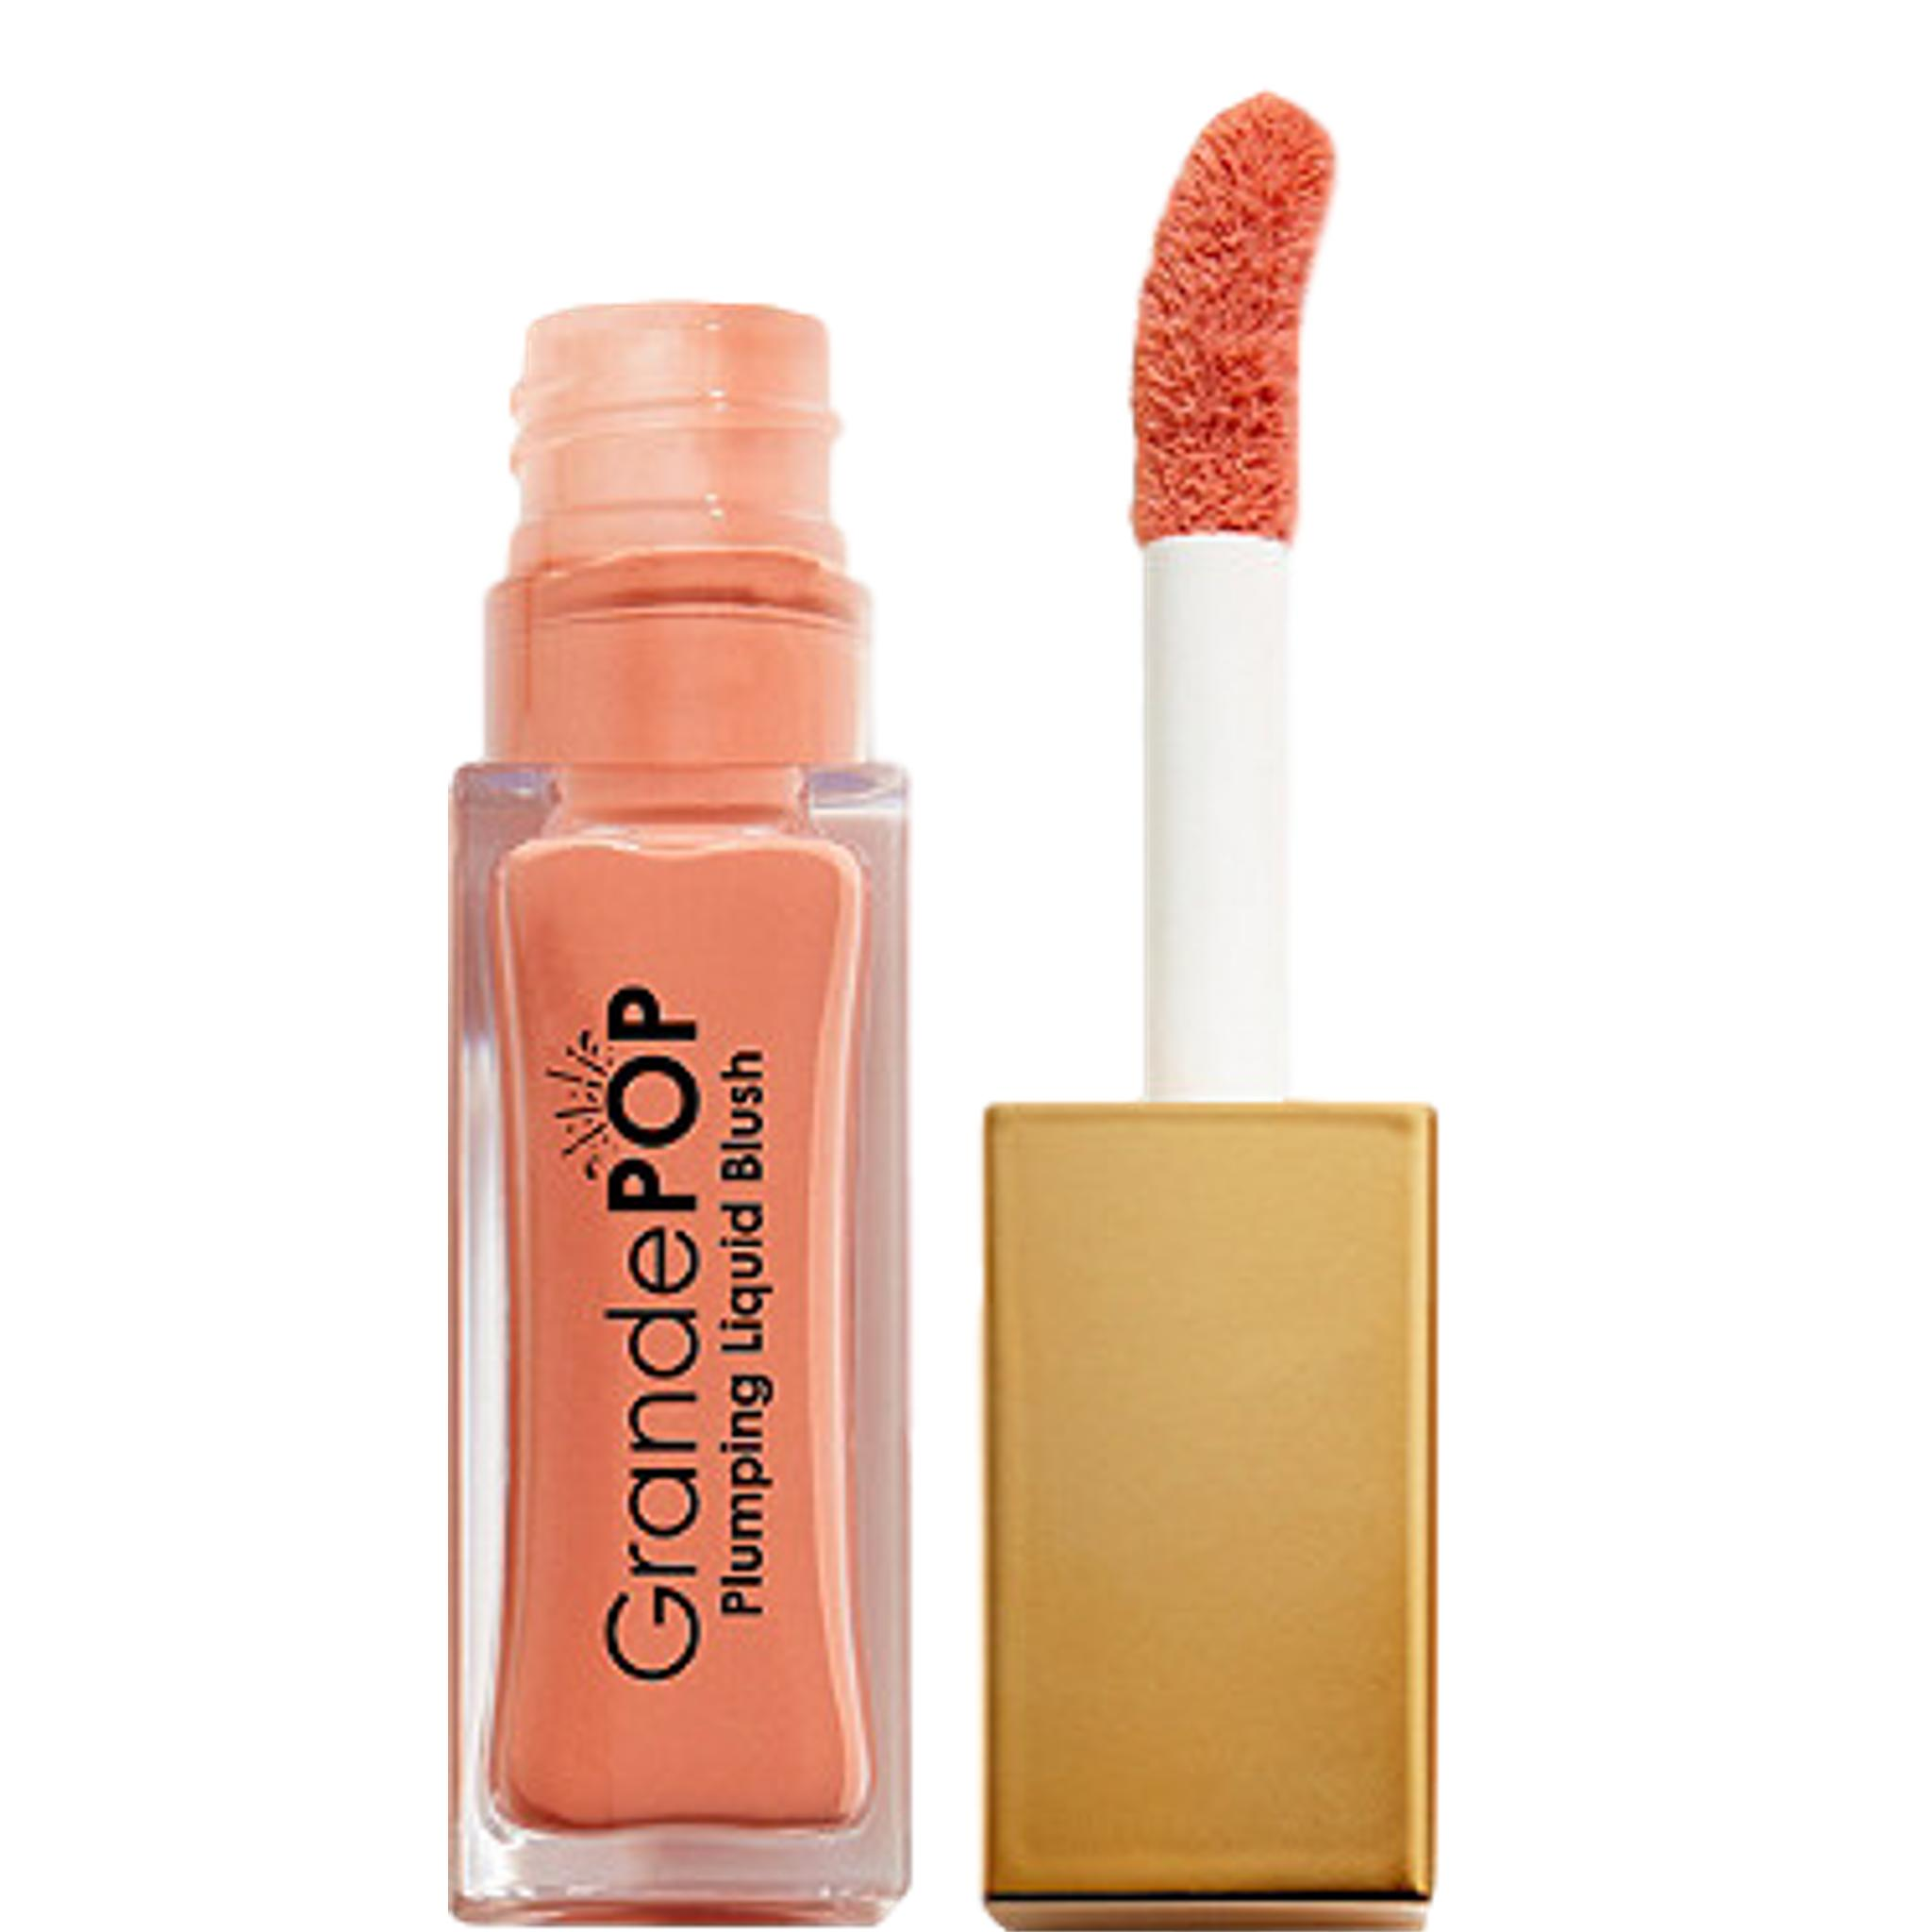 GrandePOP Plumping Liquid Blush - Sweet Peach, liquid blush, London Loves Beauty